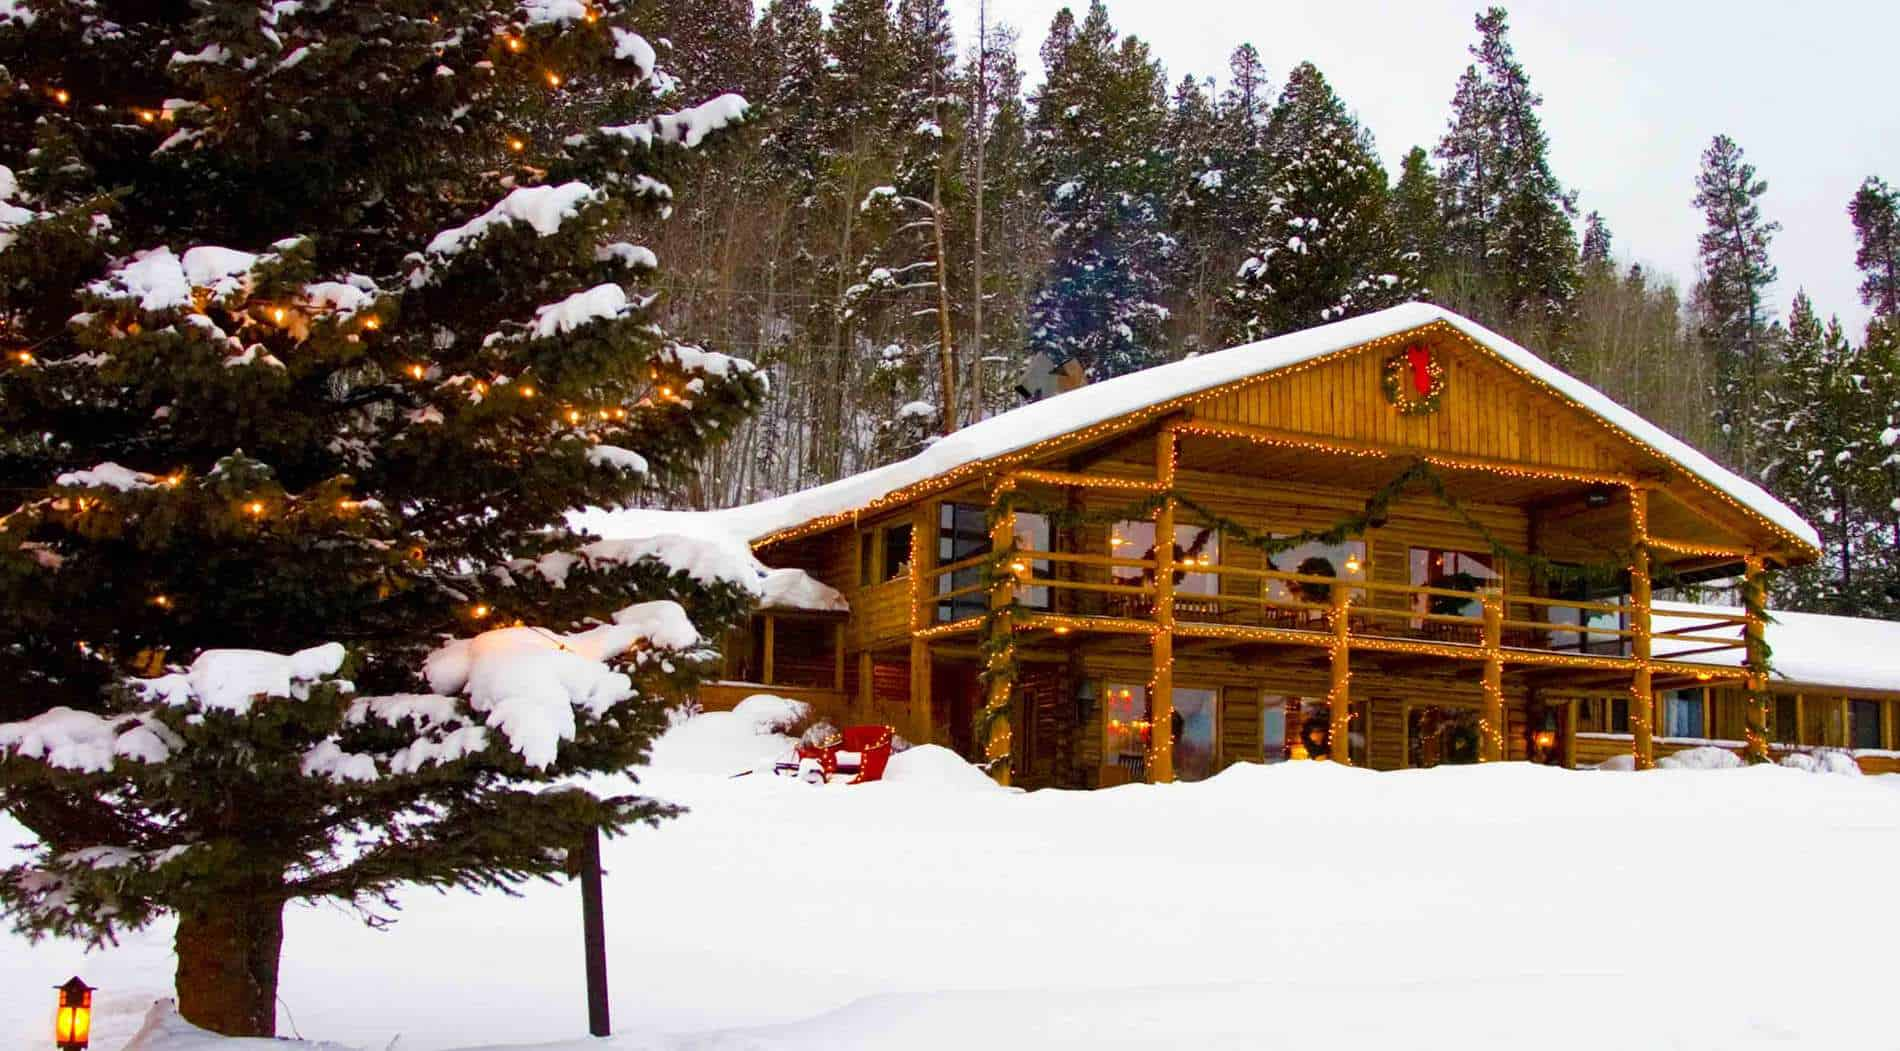 colorado holiday getaway activties for the whole family